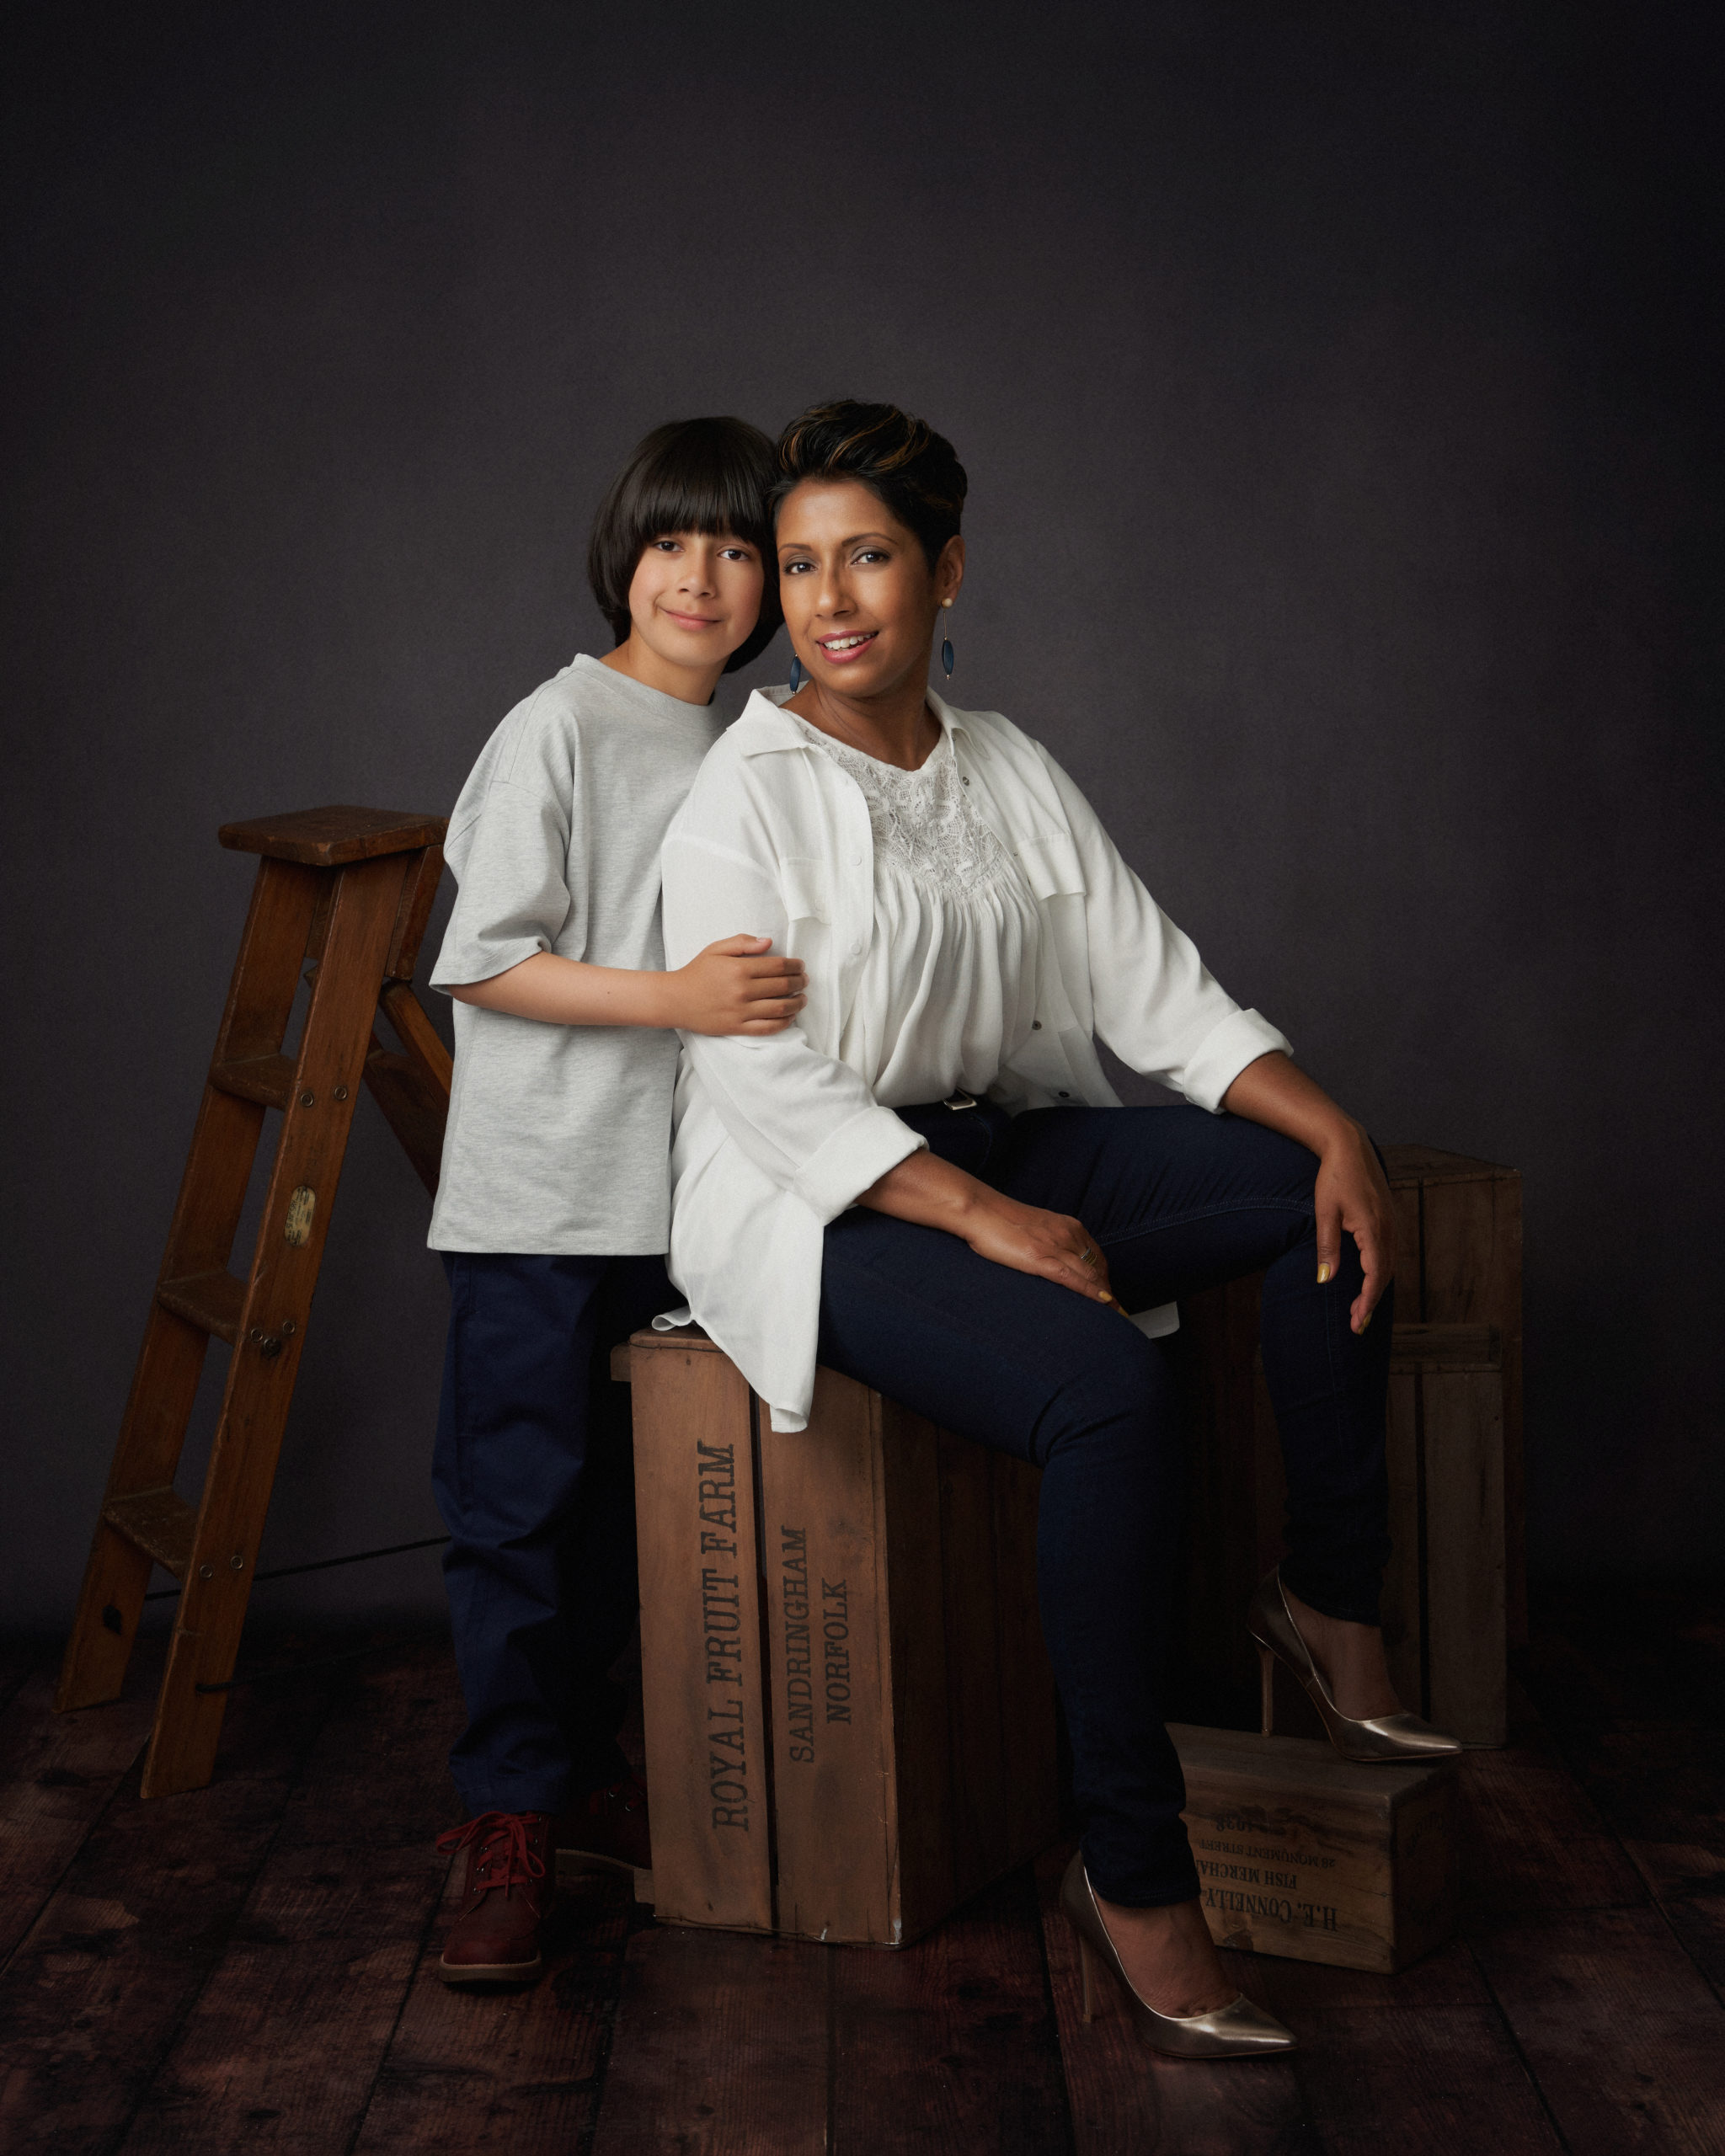 mum and son on dark background photography studio by Family photographer in preston lancashire